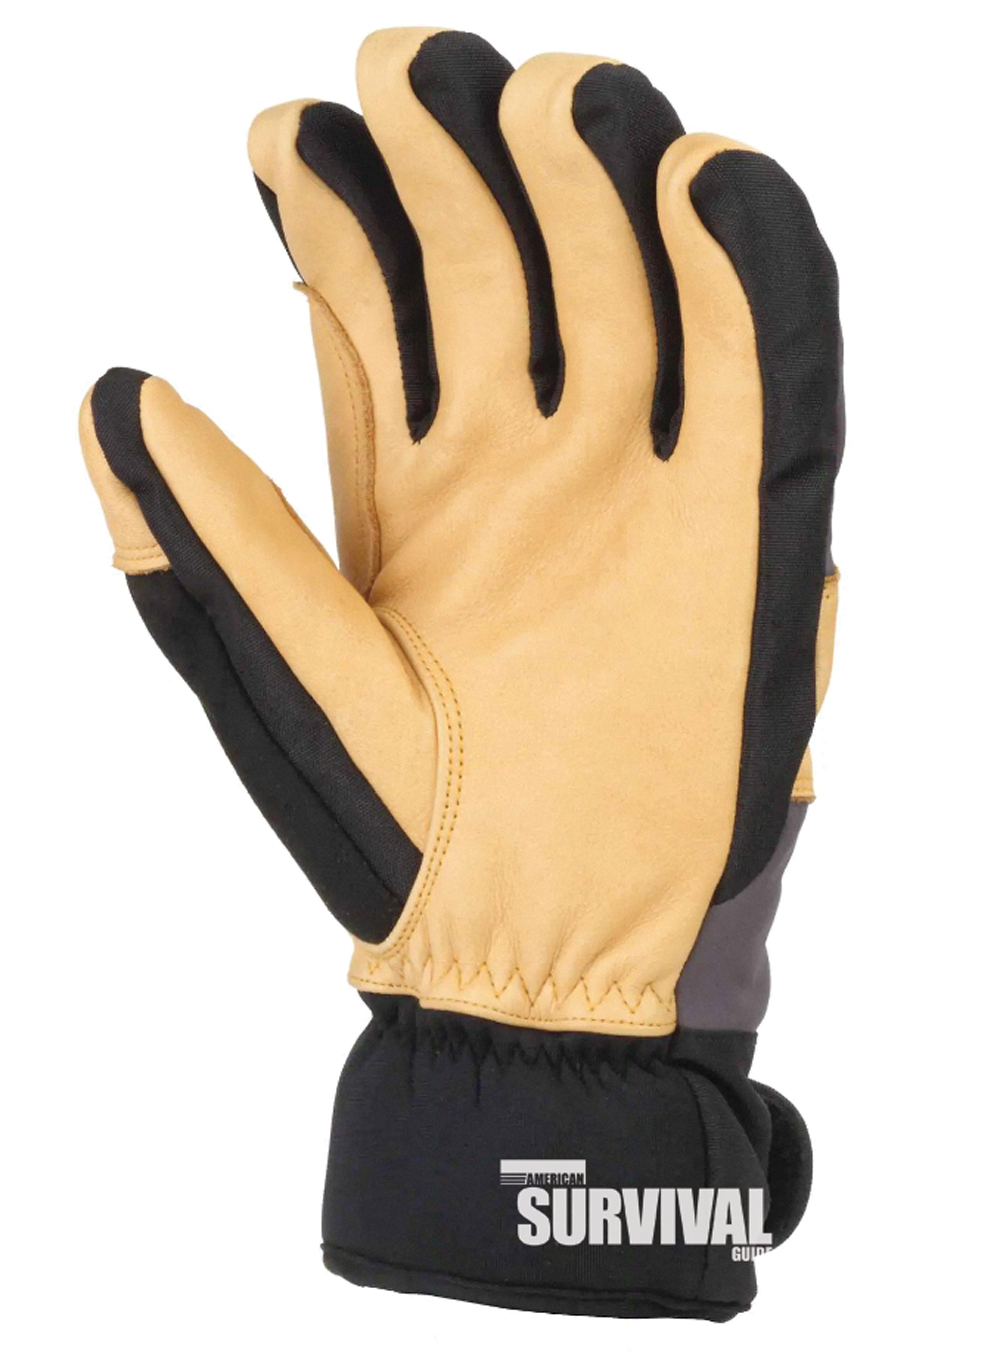 CARHARTT WINTER DEX COW GRAIN INSULATED GLOVES